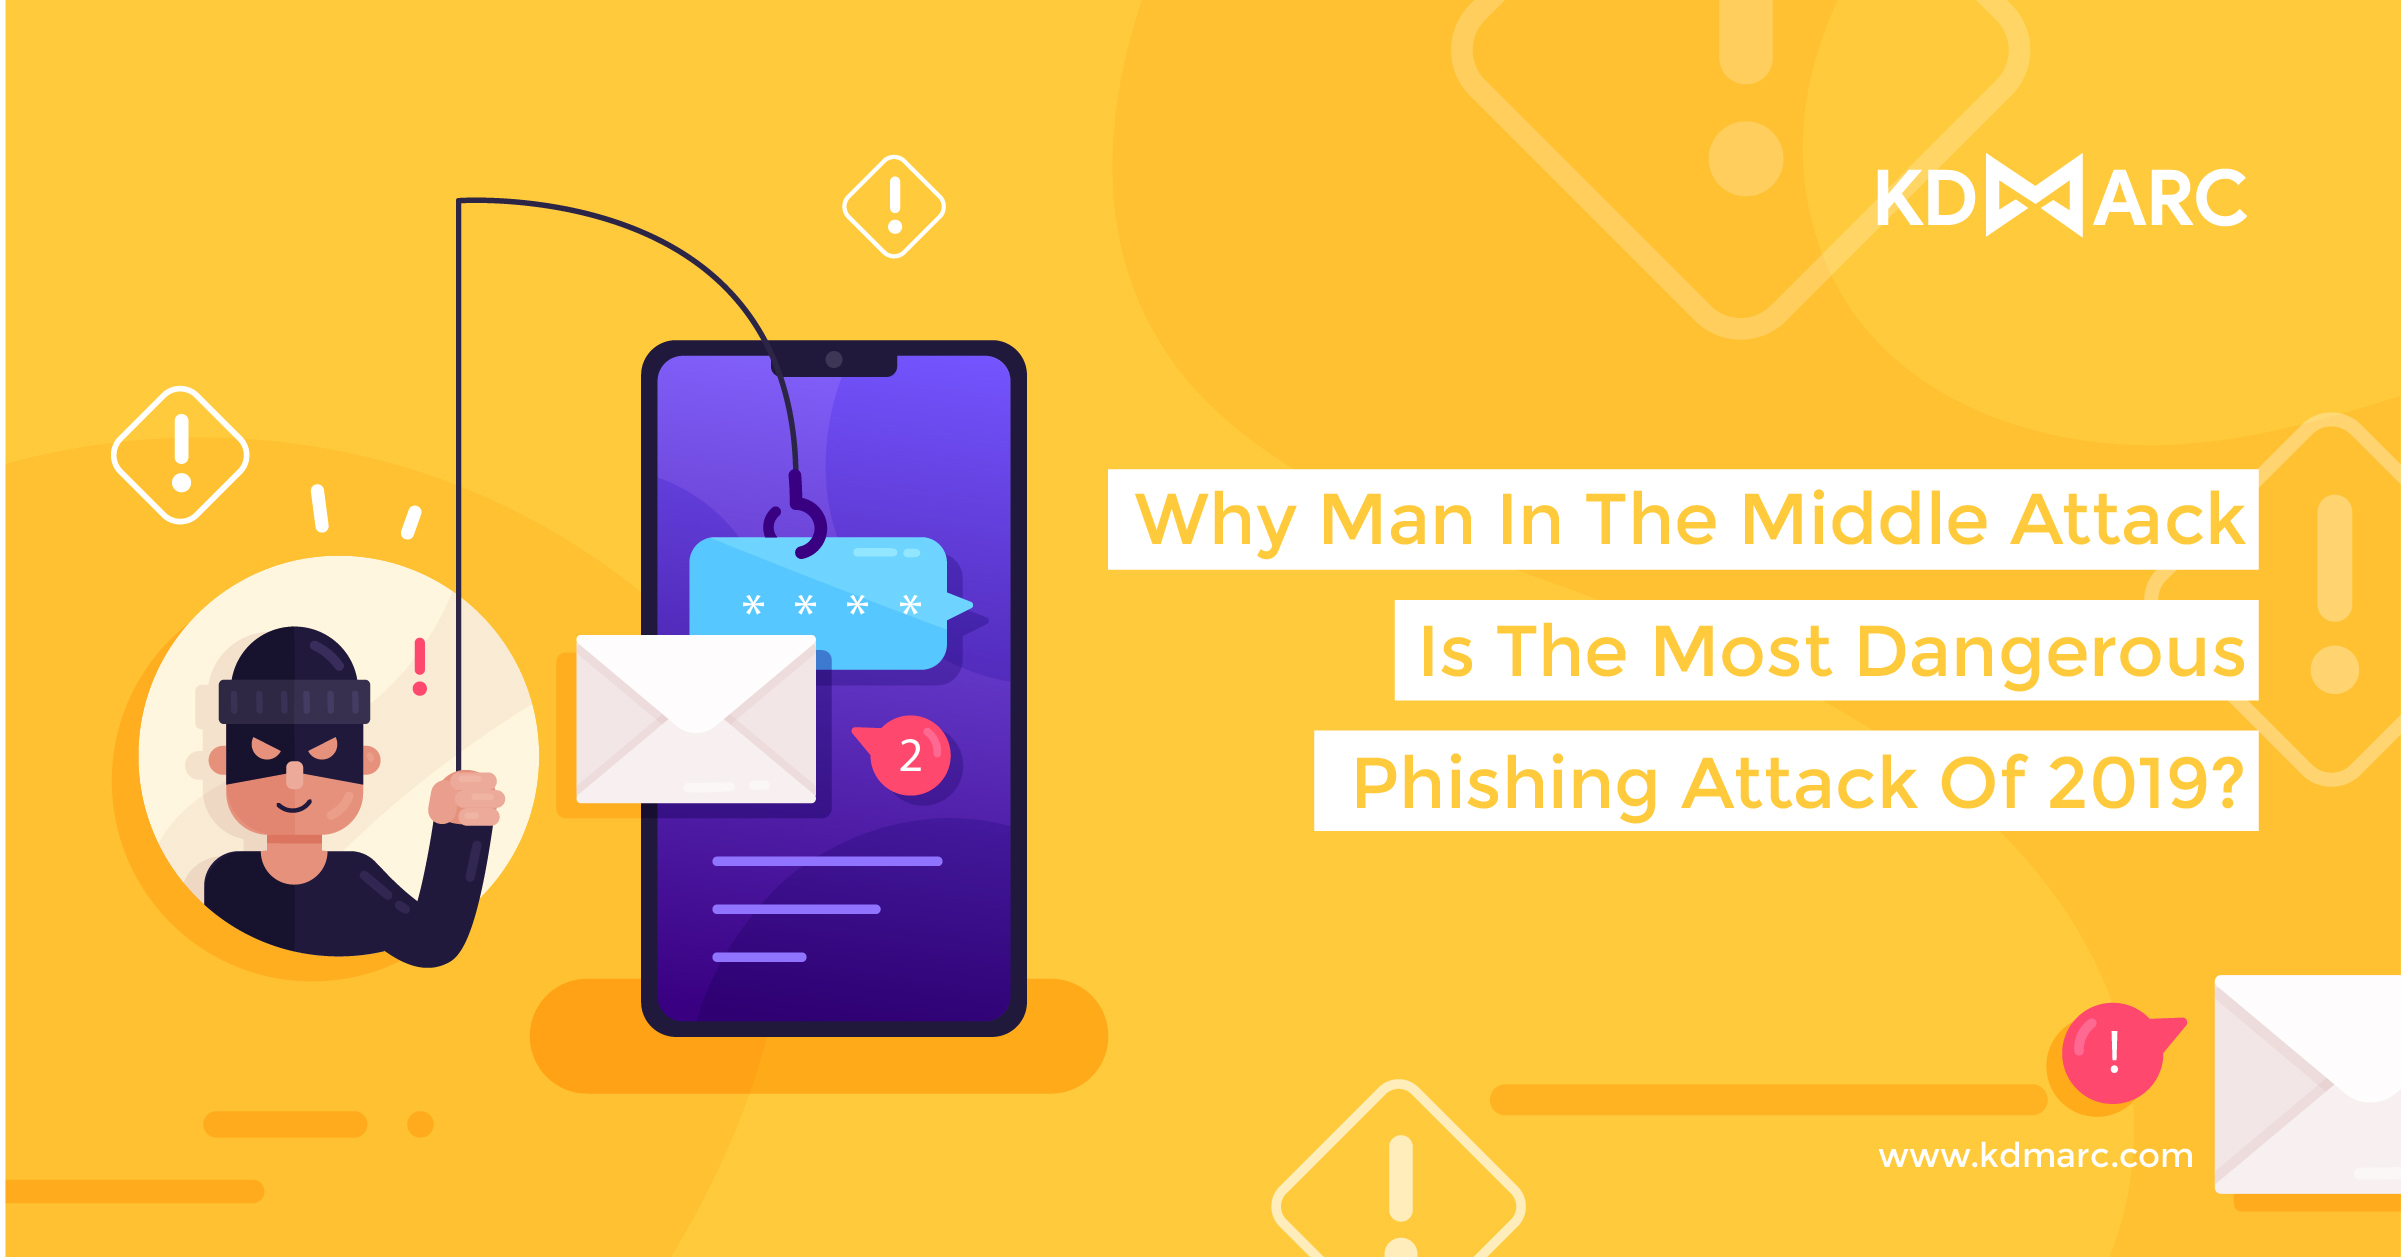 Why Man in the Middle Attack is the Most Dangerous Phishing Attack of 2019?